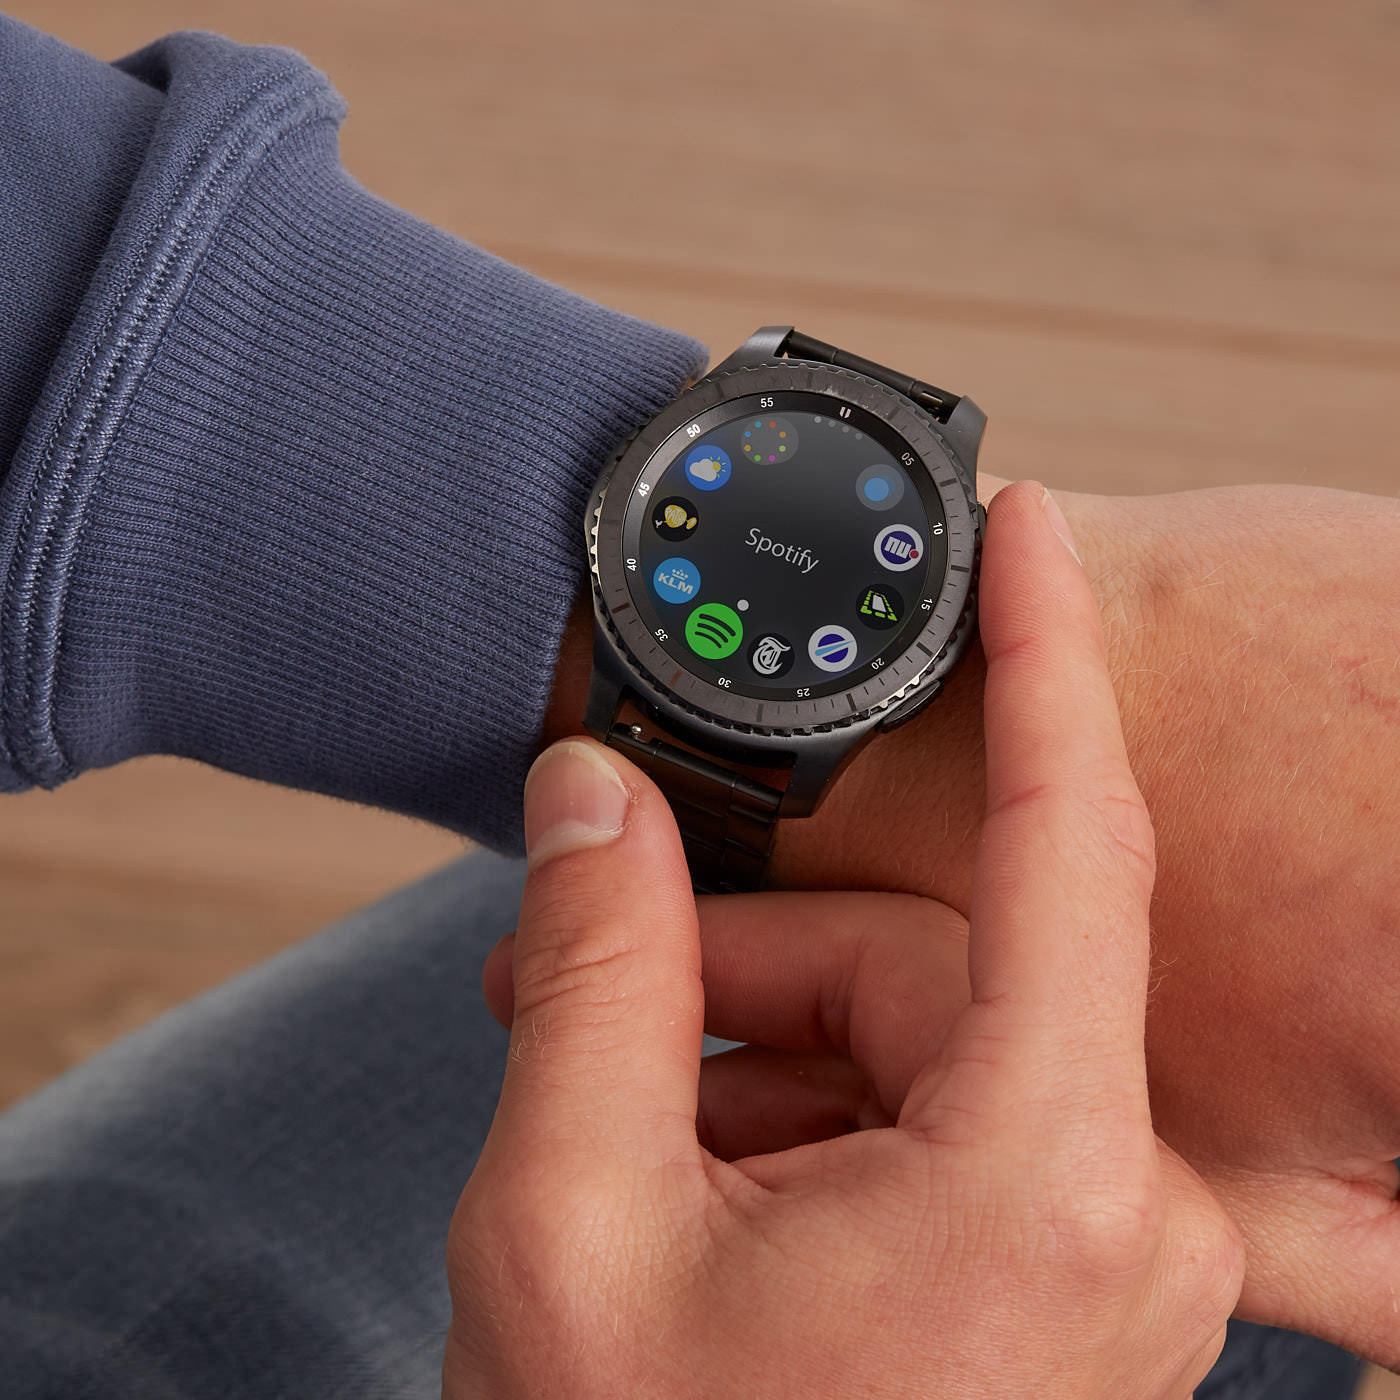 Samsung Special Edition Gear S3 Frontier Smartwatch SA.S3FRDG